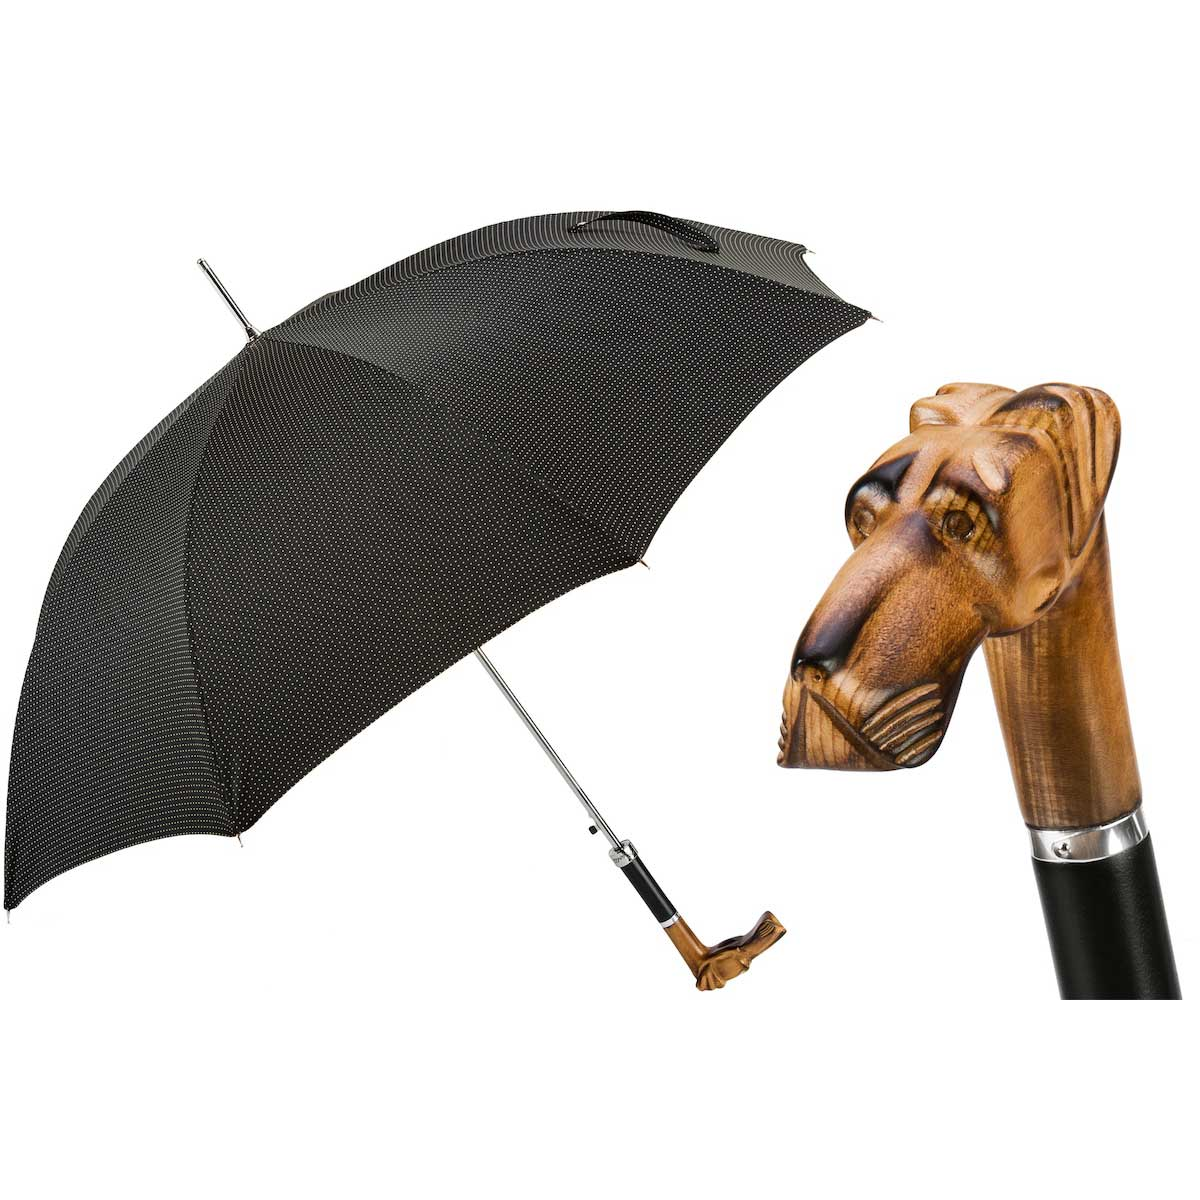 Pasotti Men's Bespoke Hand Carved Great Dane Black Pindot Umbrella